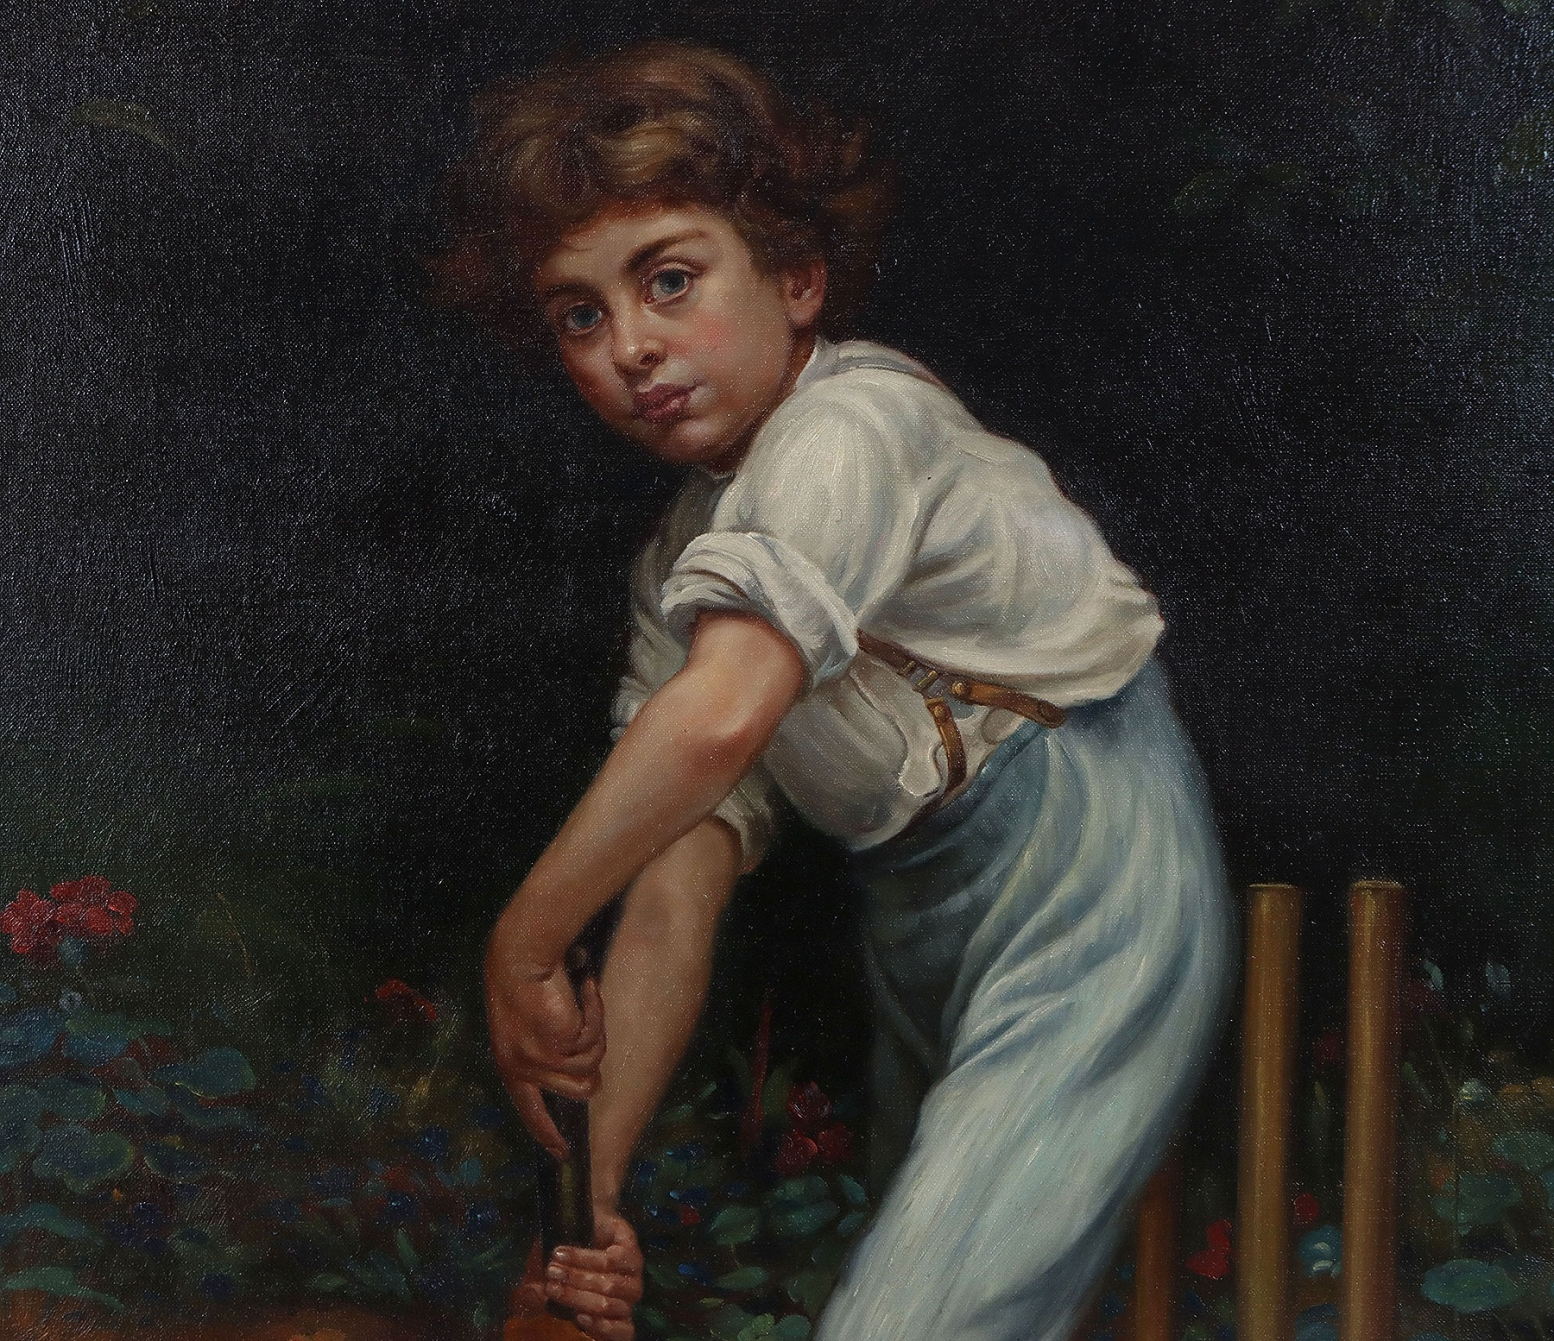 Oil painting after Captain of the Eleven by Philip Hermogenes Calderon